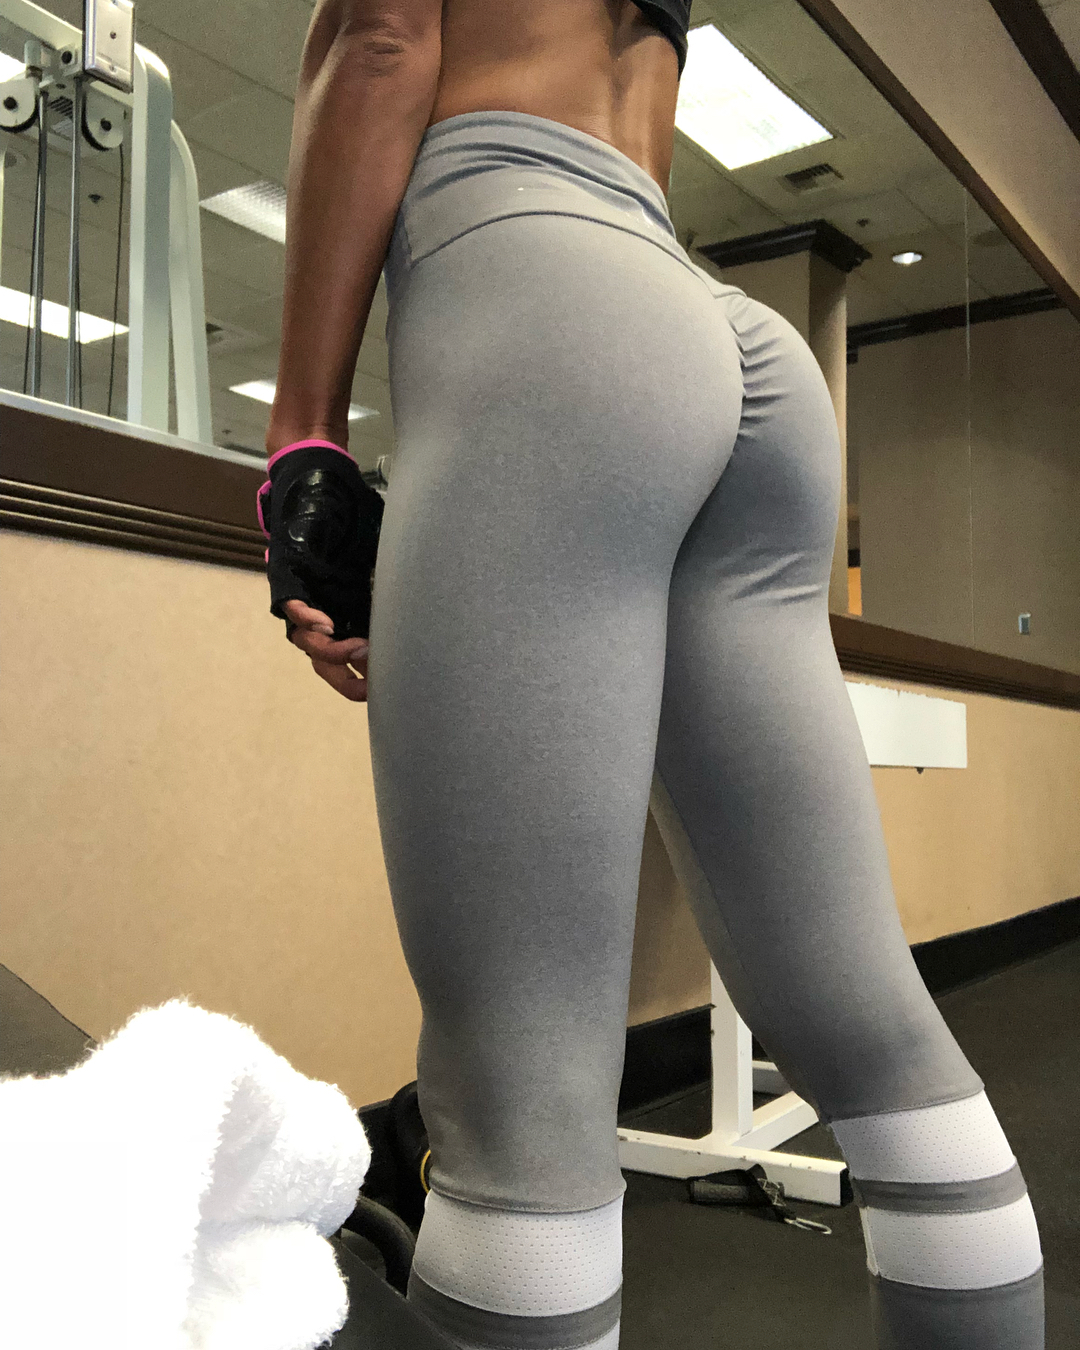 Workout with Newhalf Miran for tight glutes